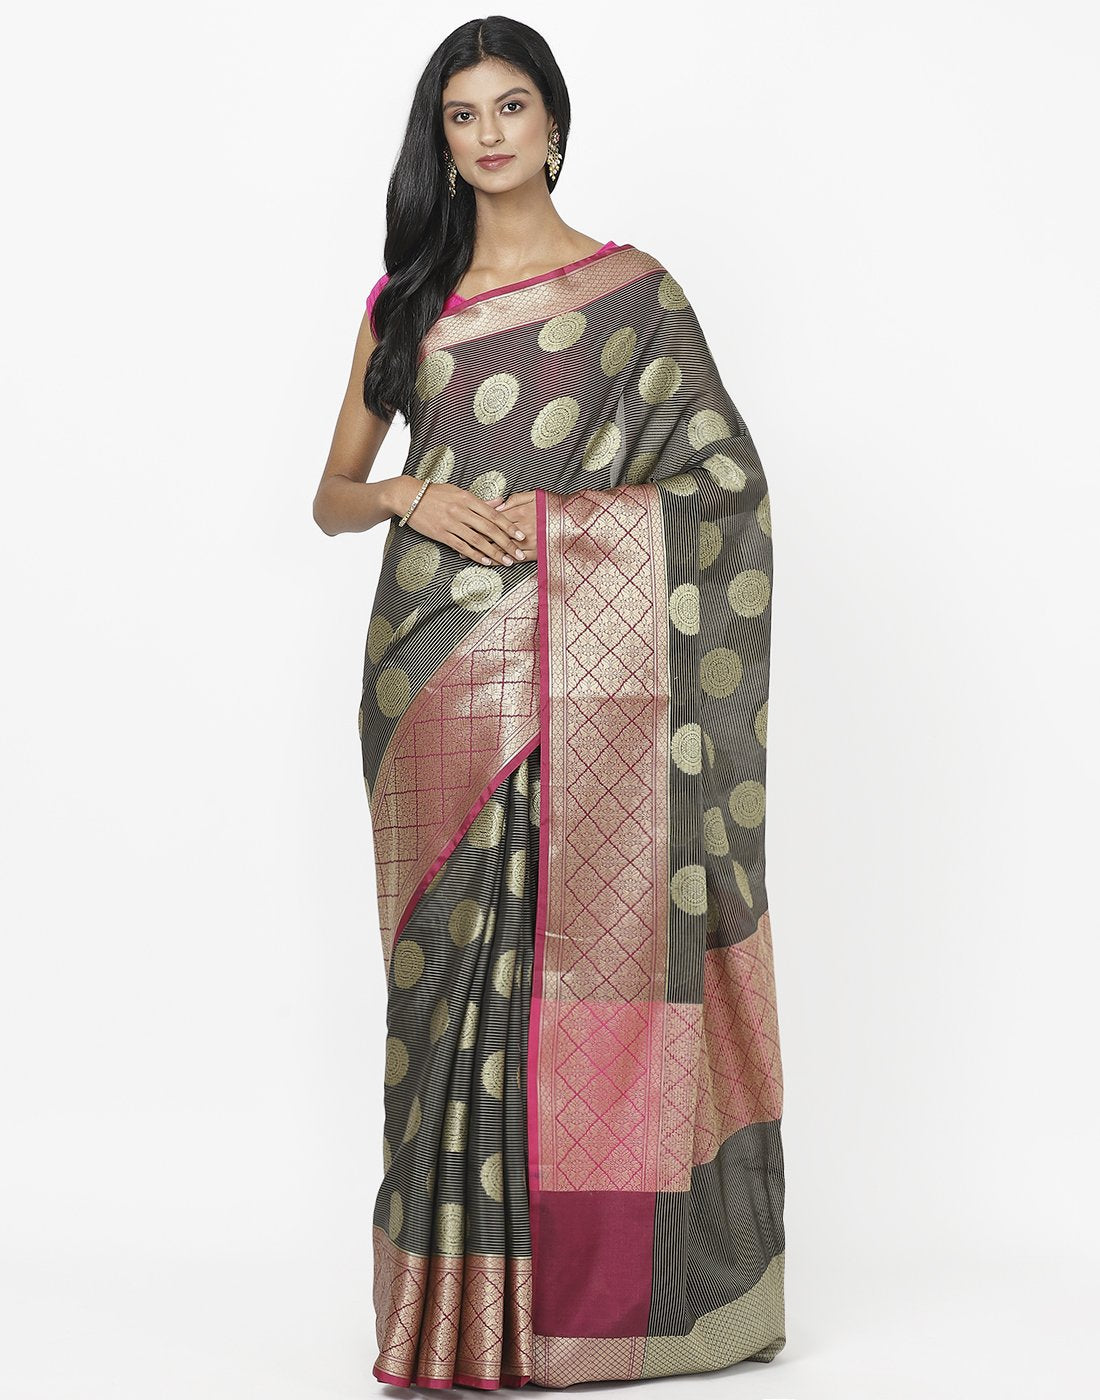 MBZ Meena Bazaar-Black Cotton Woven Saree